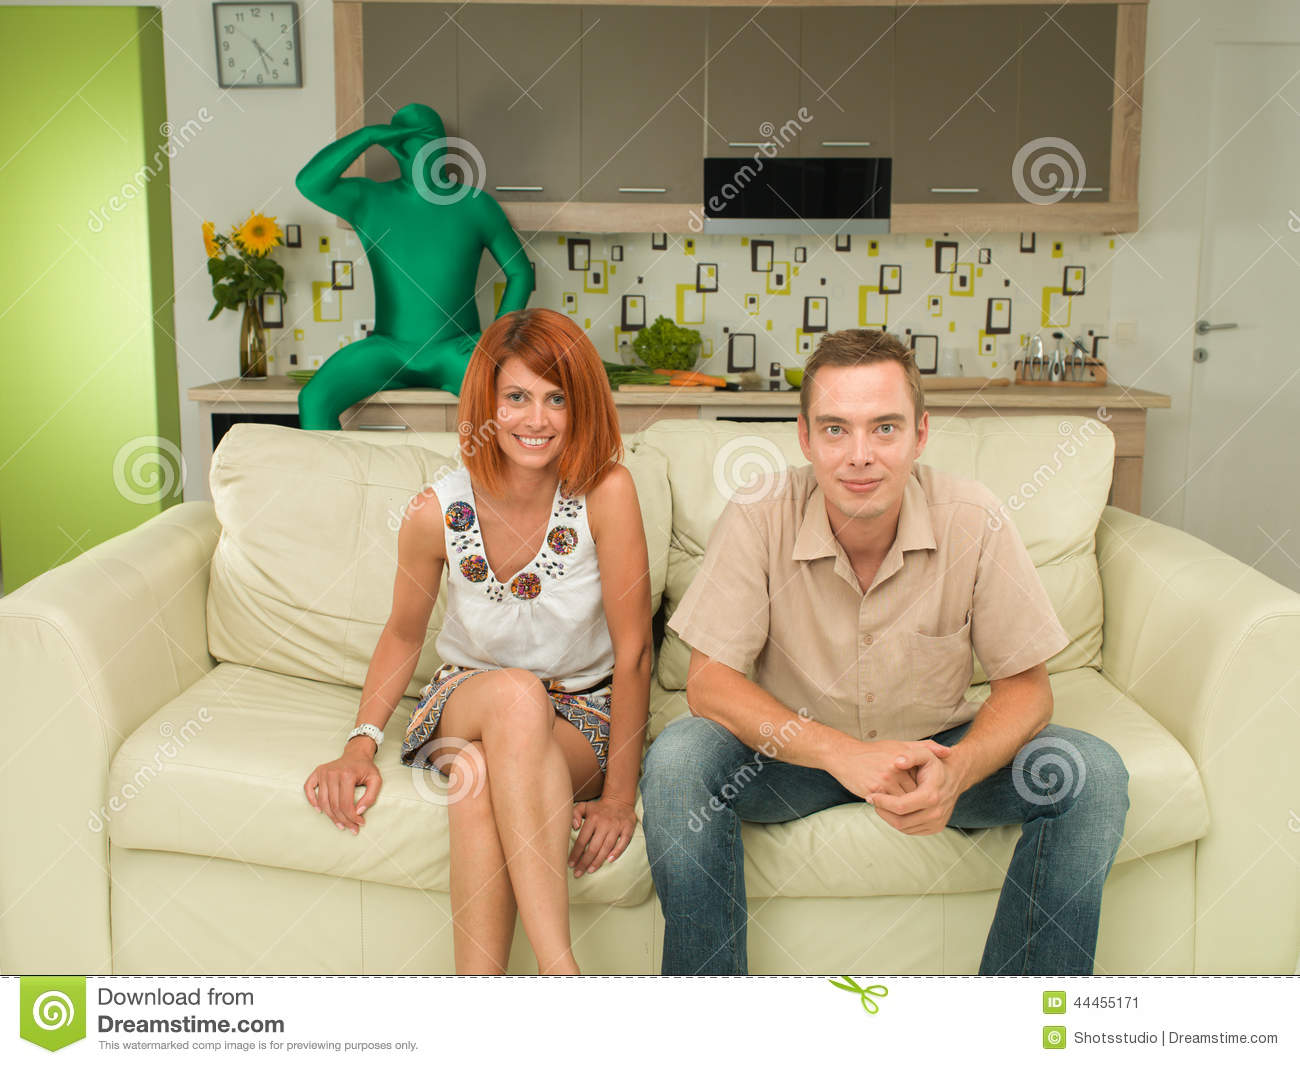 Funny Moment Couple Watching Tv Stock Image